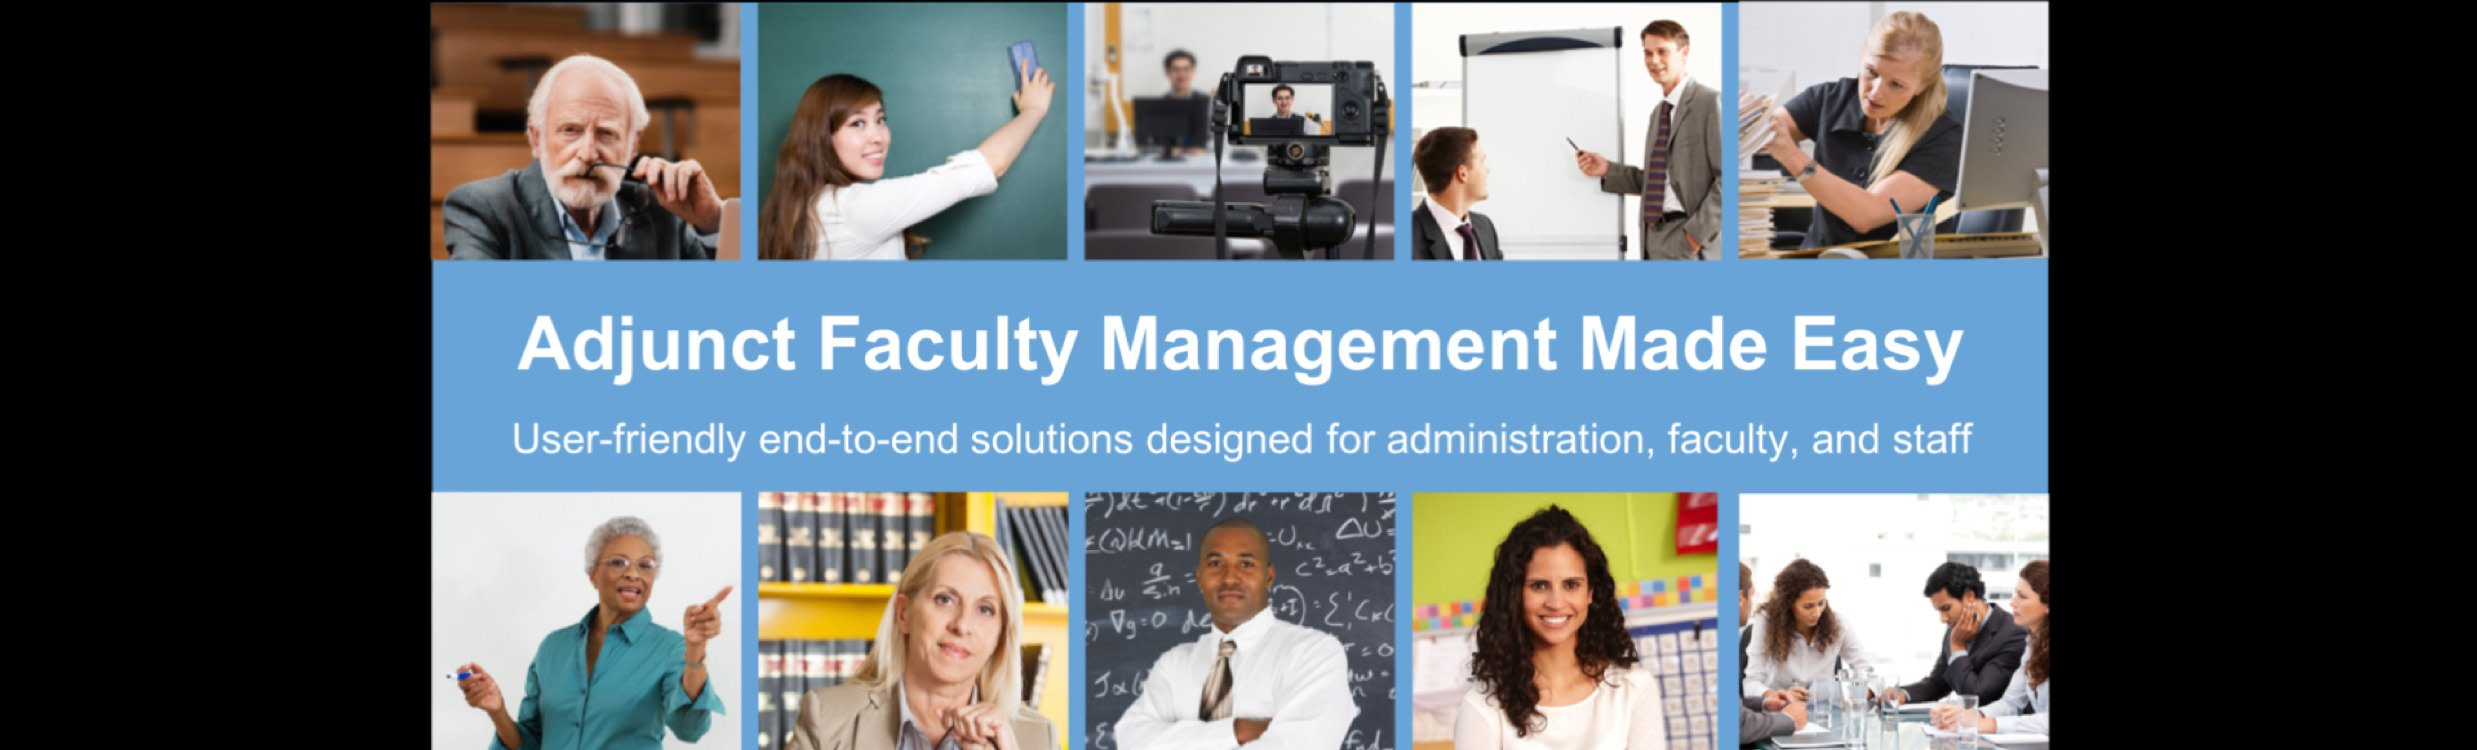 Adjunct Faculty Management Made Easy